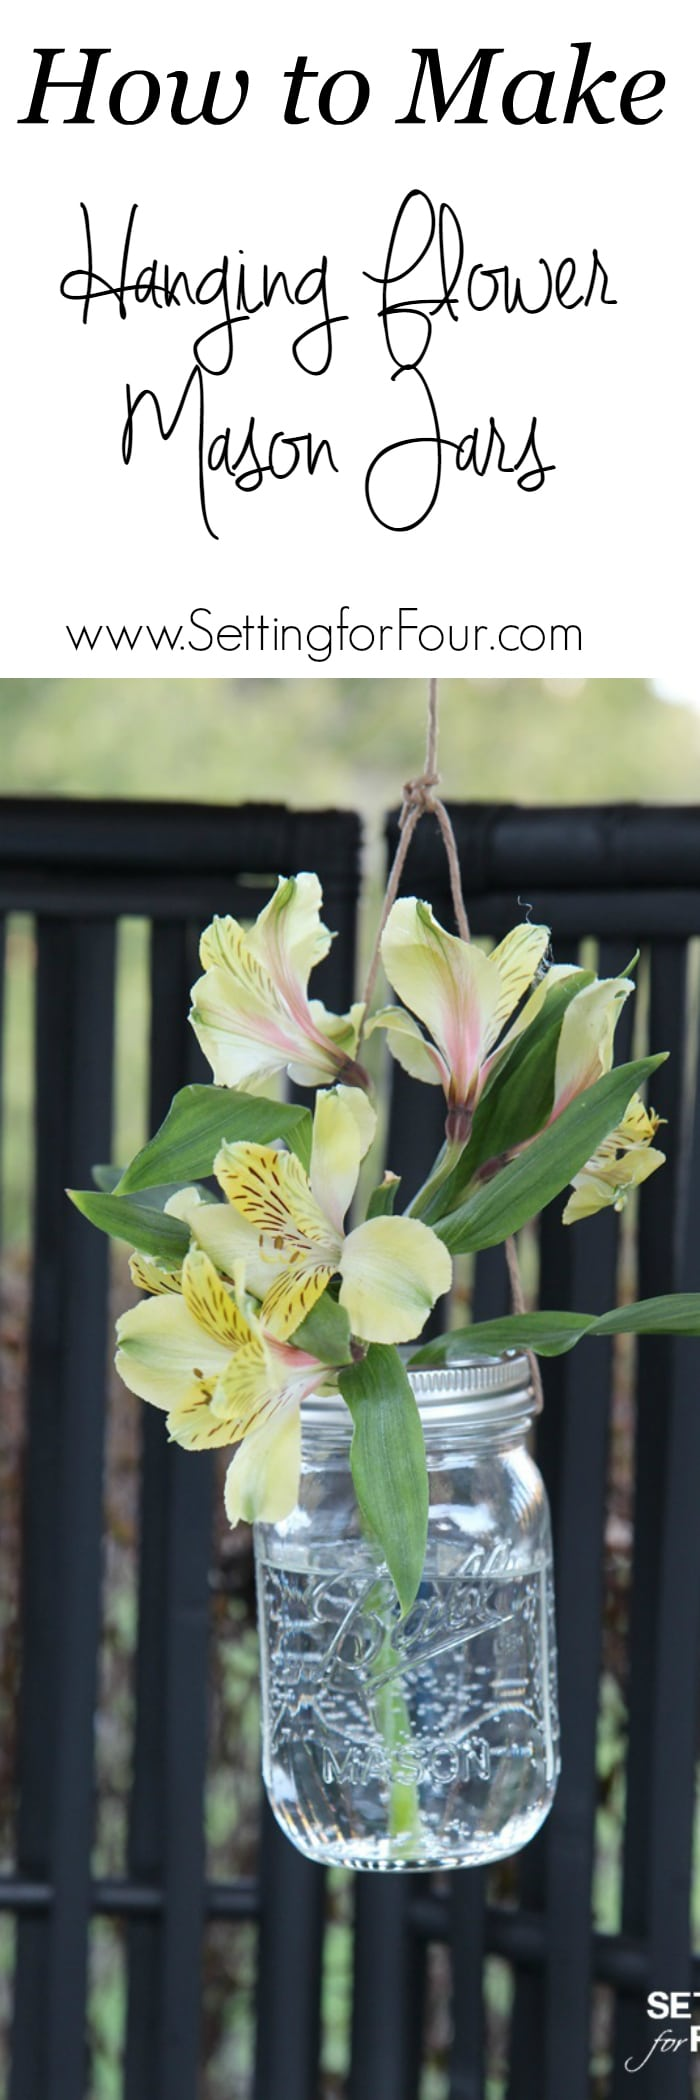 How to make diy hanging flower mason jars!